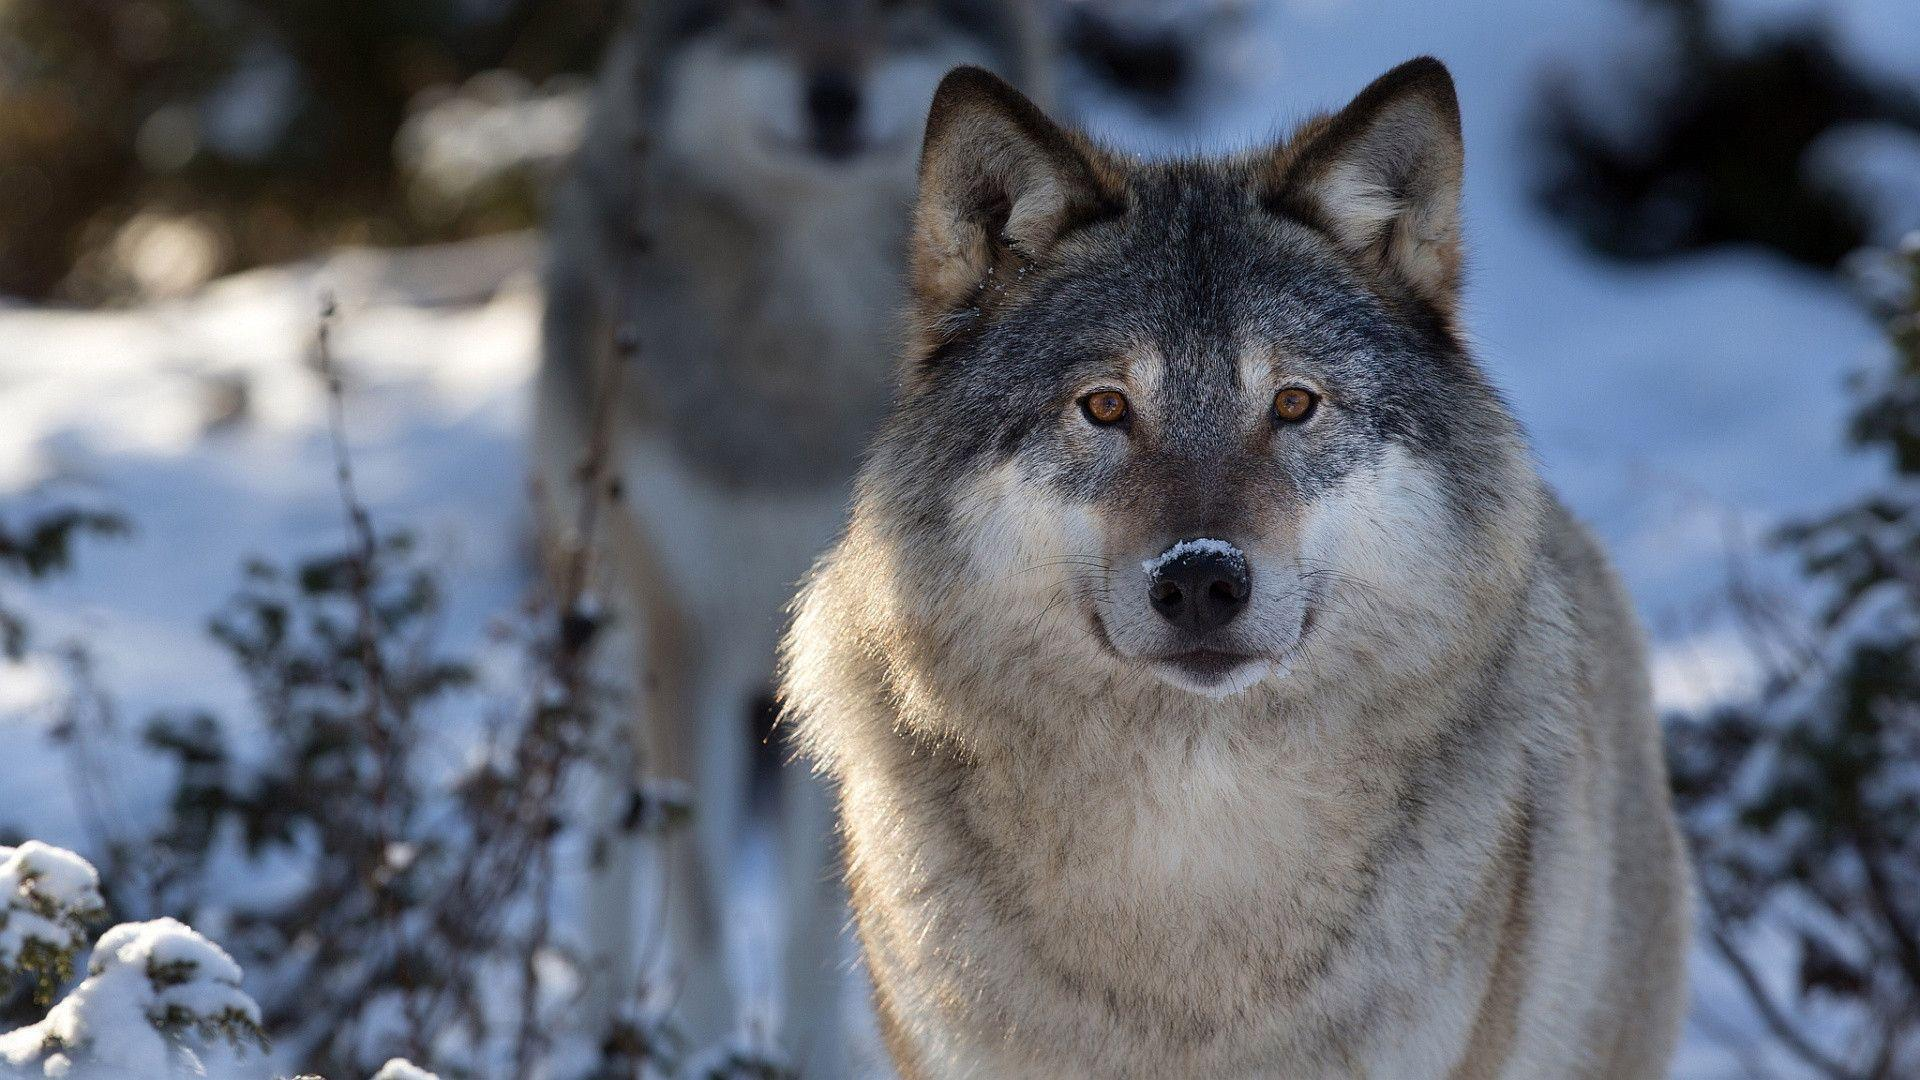 wolf wallpapers ndash animal - photo #7